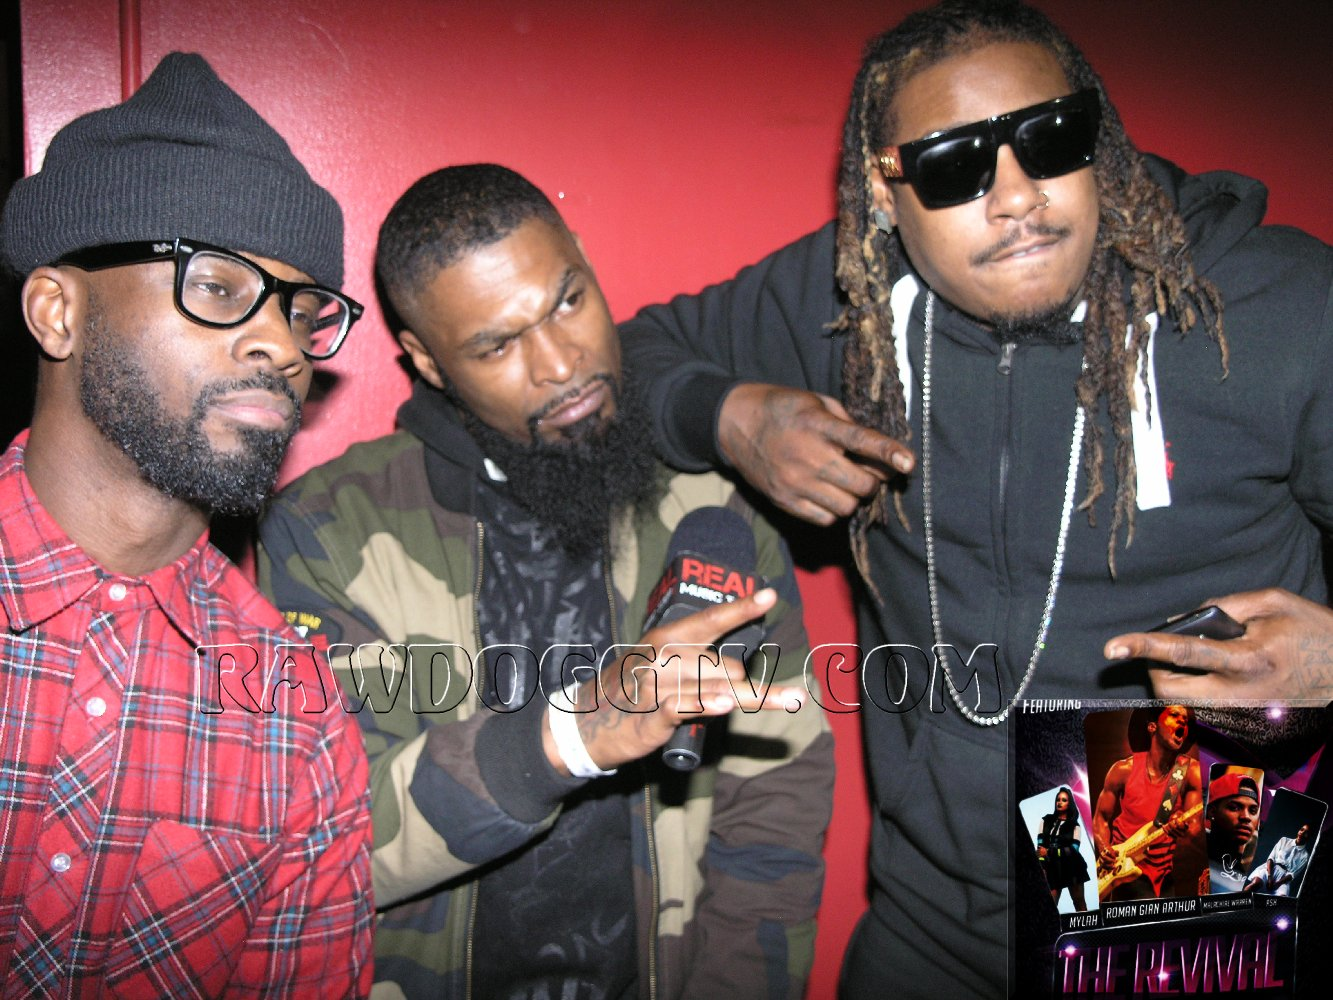 THE REVIVAL R&B SHOWCASE PHOTOS 2015 brian michael cox Atlanta Roman Gianarthur, Mylah, Malachiae, b cox, Real Music Tour-RAWDOGGTV 305-490-2182 Viral Marketing (12)